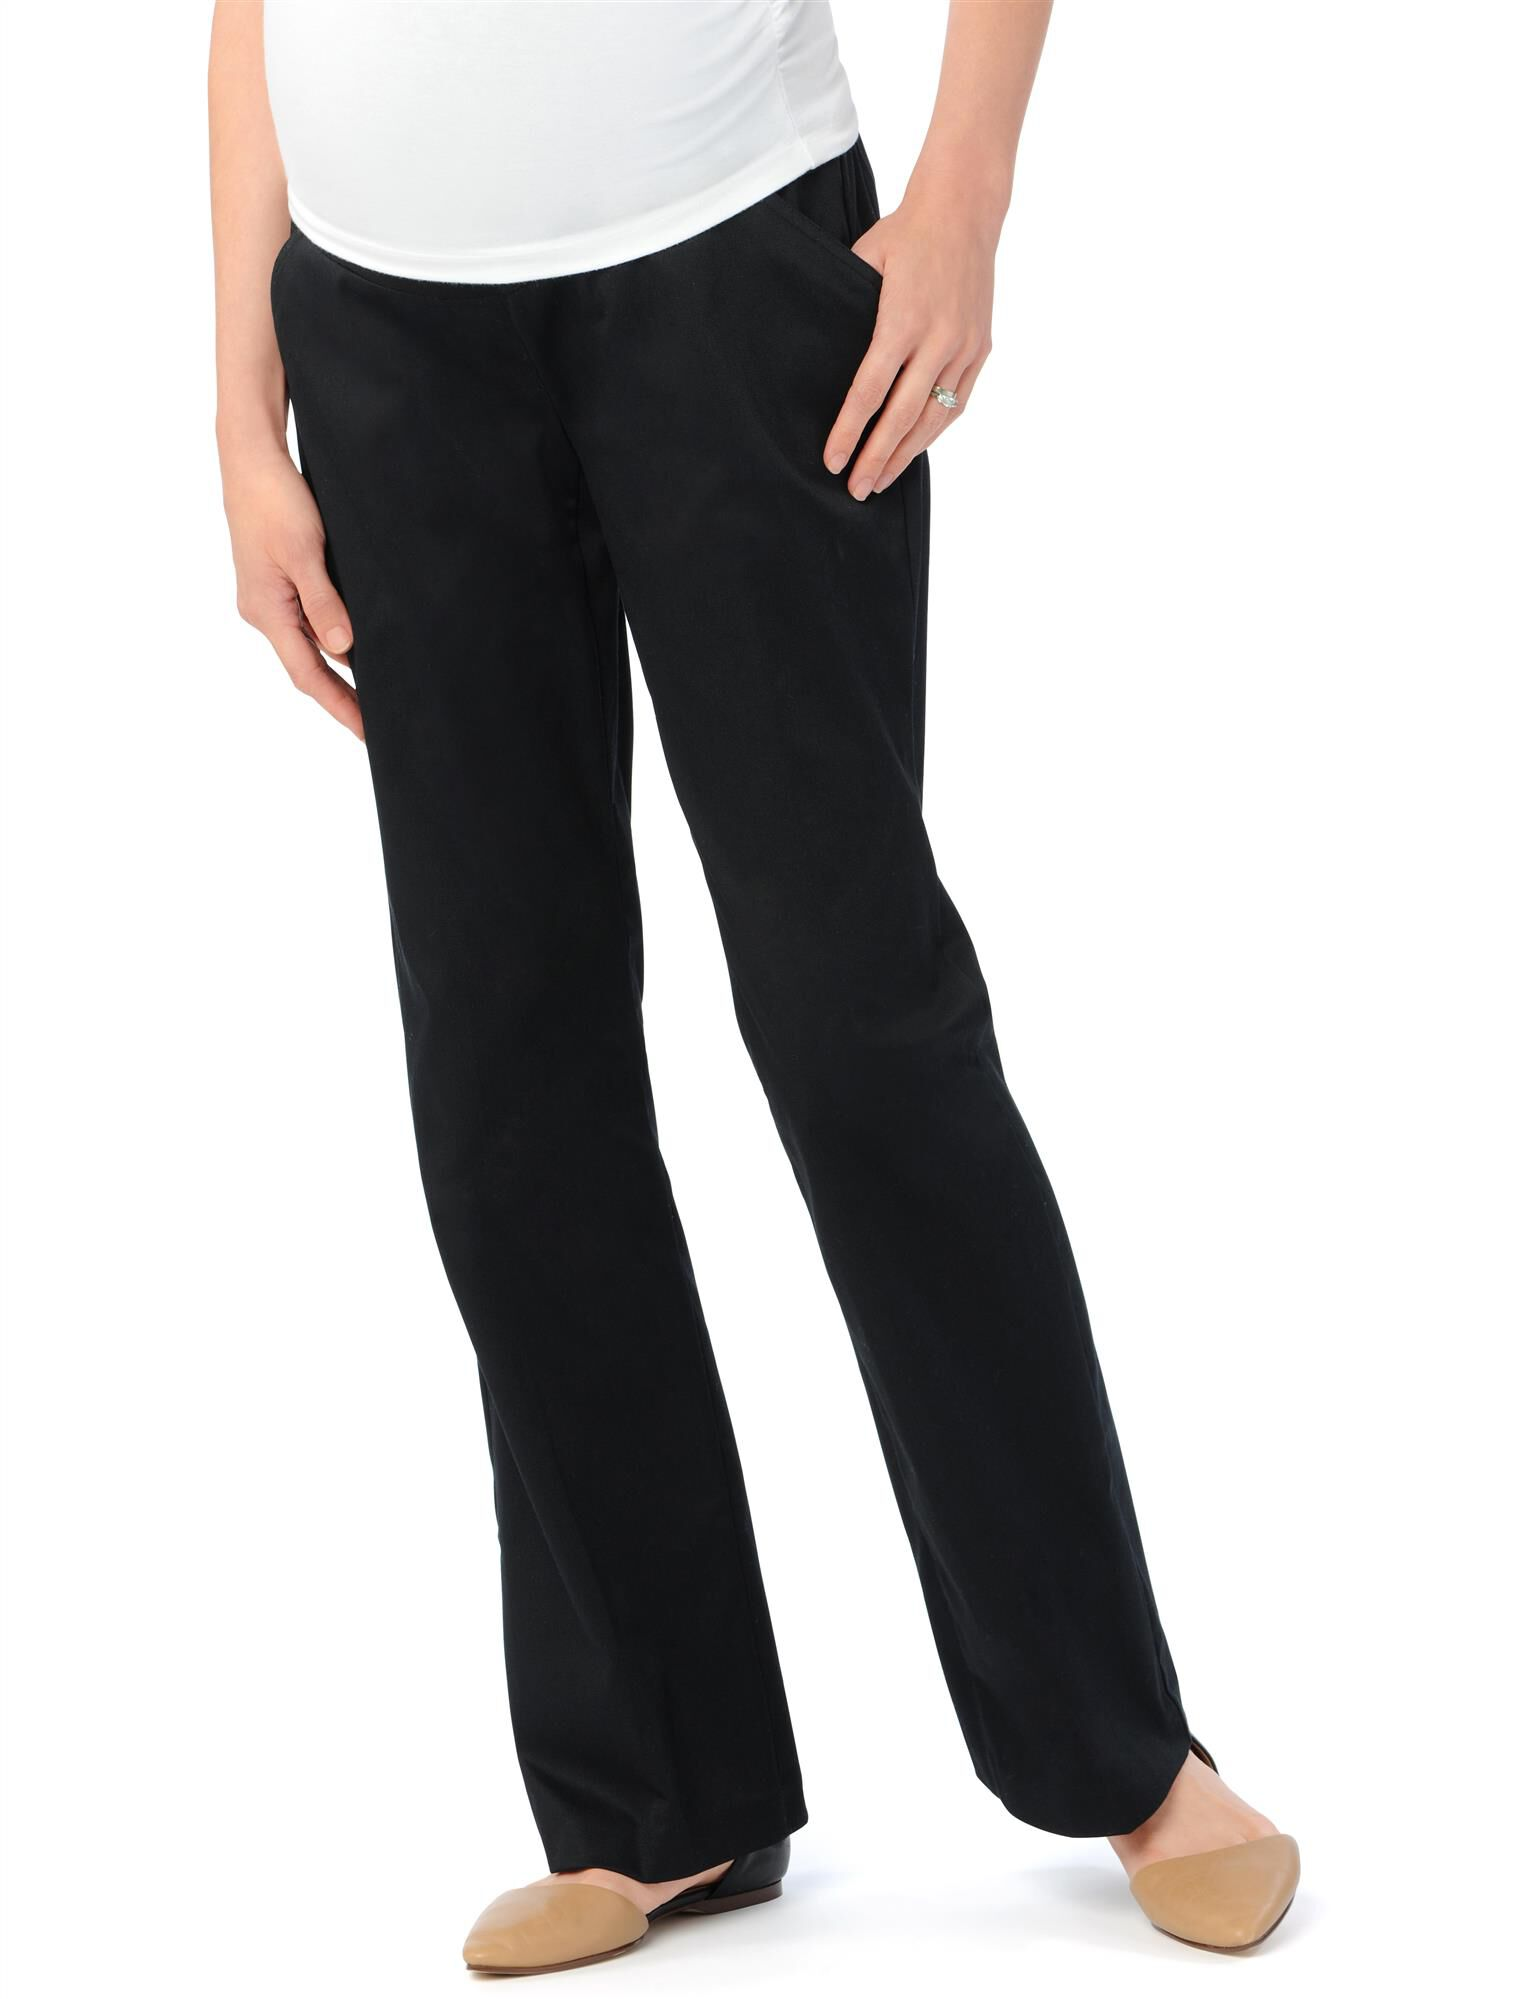 Secret Fit Belly Twill Boot Cut Maternity Pants